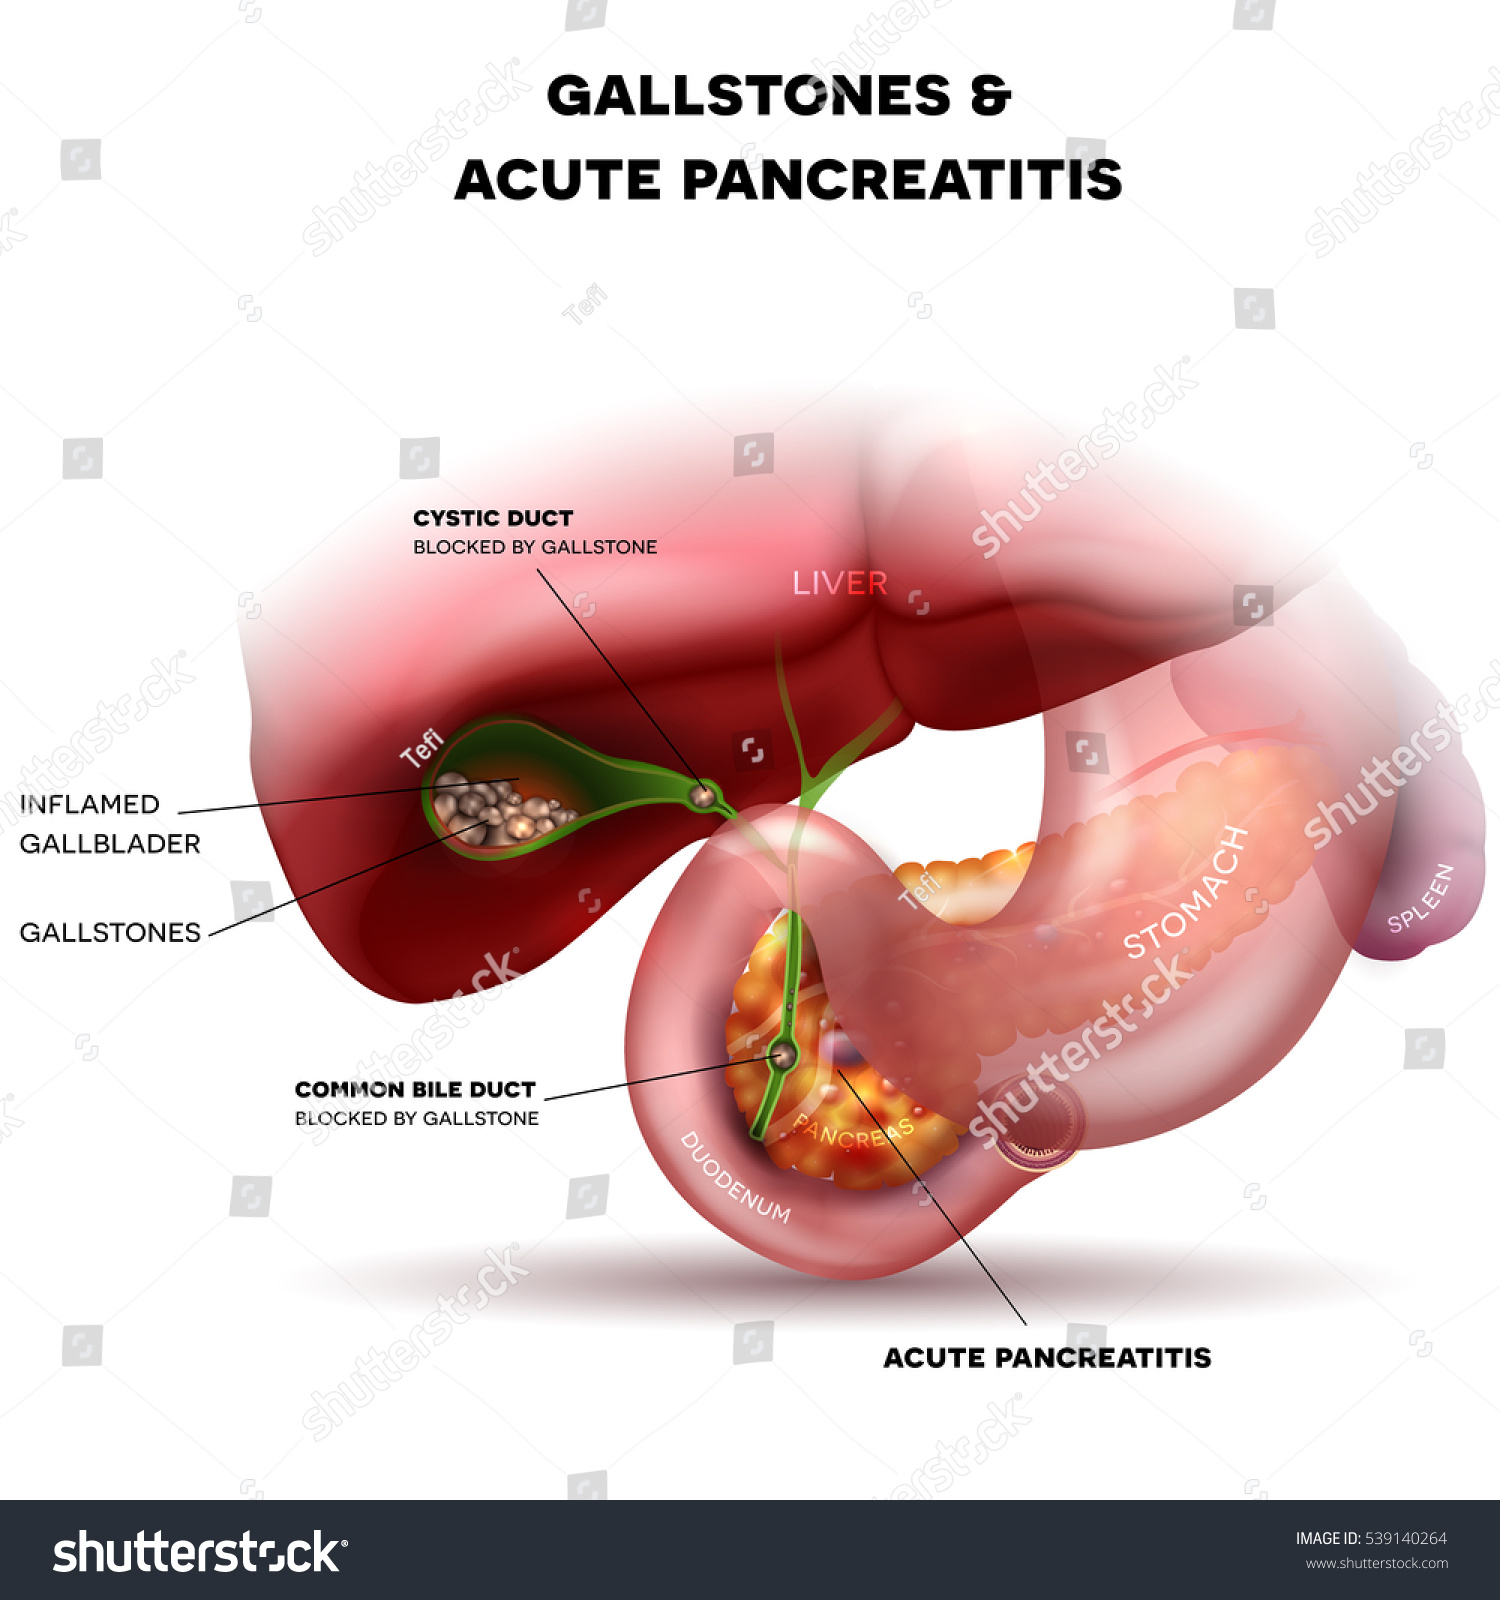 Gallstones Gallbladder Acute Pancreatitis Anatomy Bright Stock ...